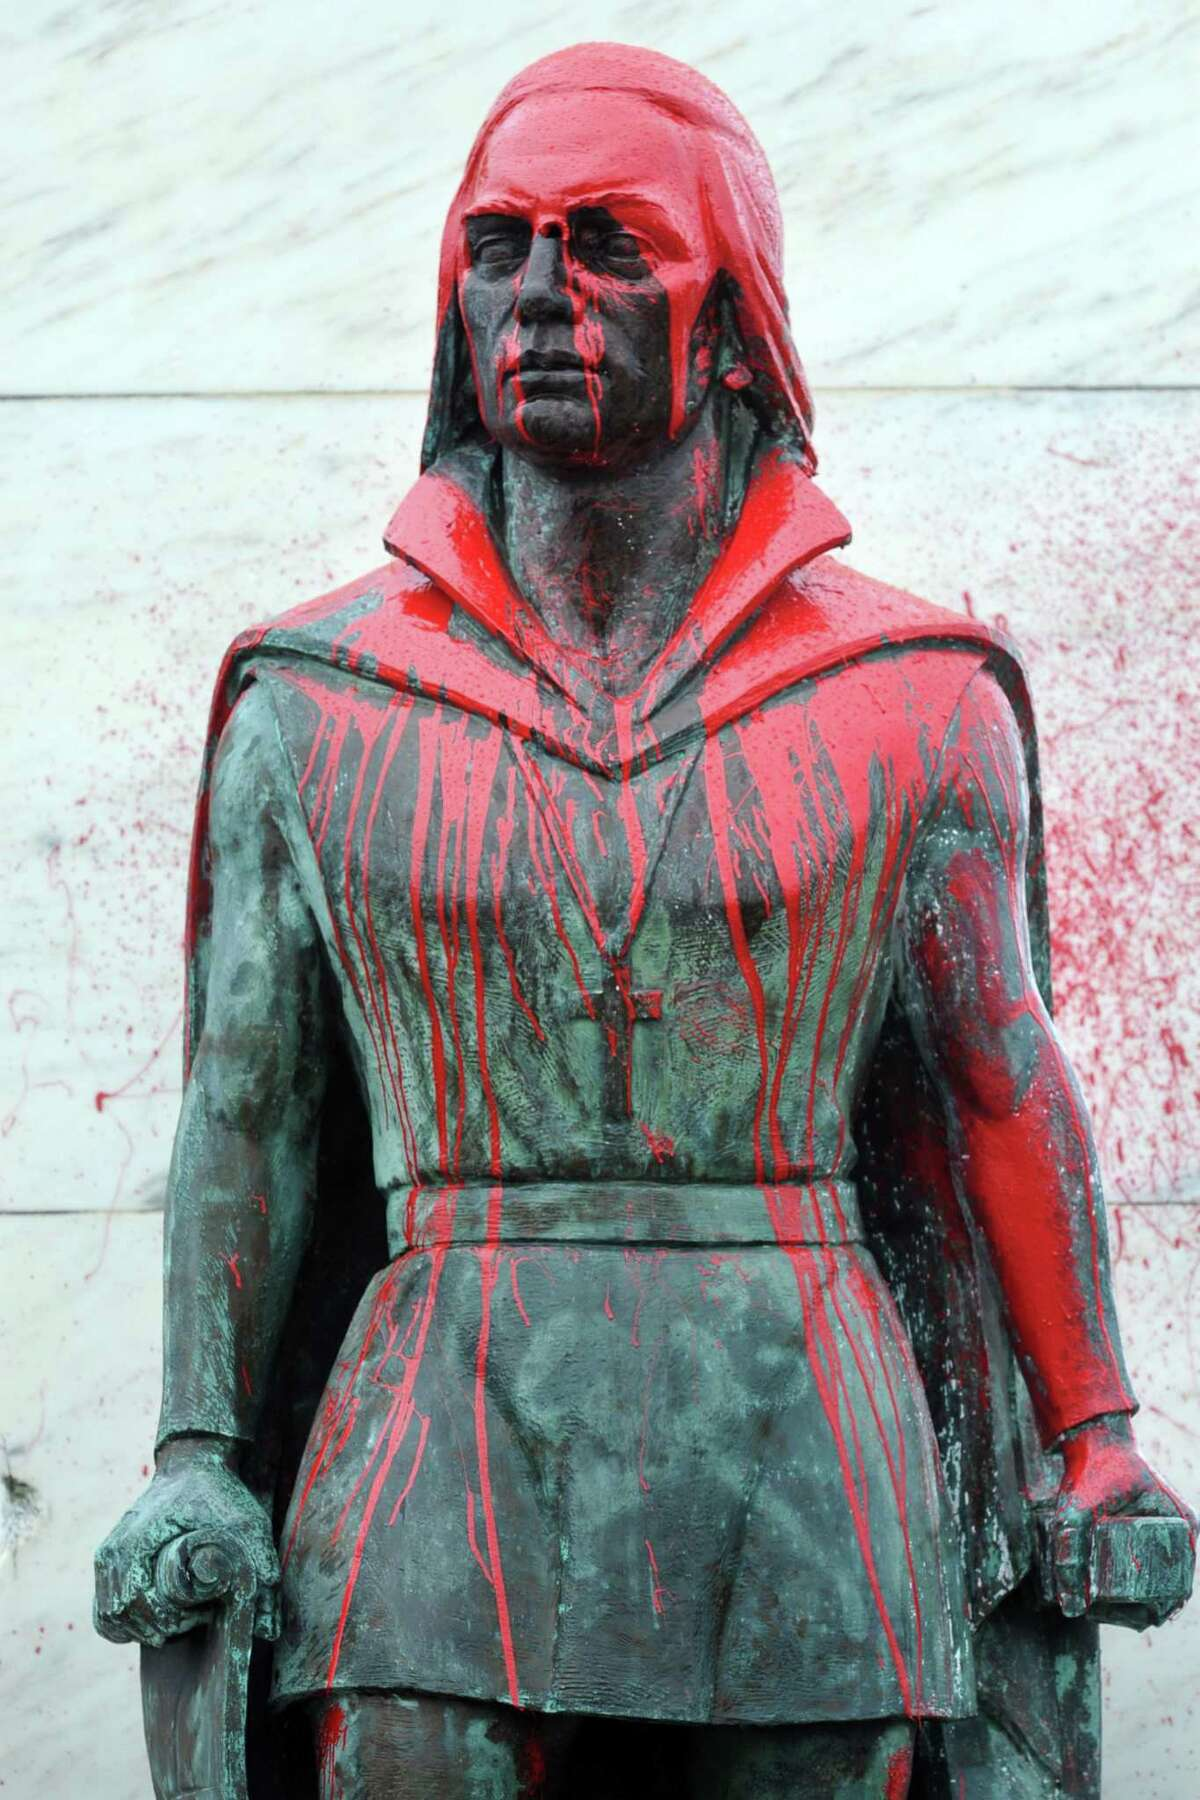 The statue of Christopher Columbus in Bridgeport, Conn.'s Seaside Park was splattered with red paint priot to Columbus Day, 2017.